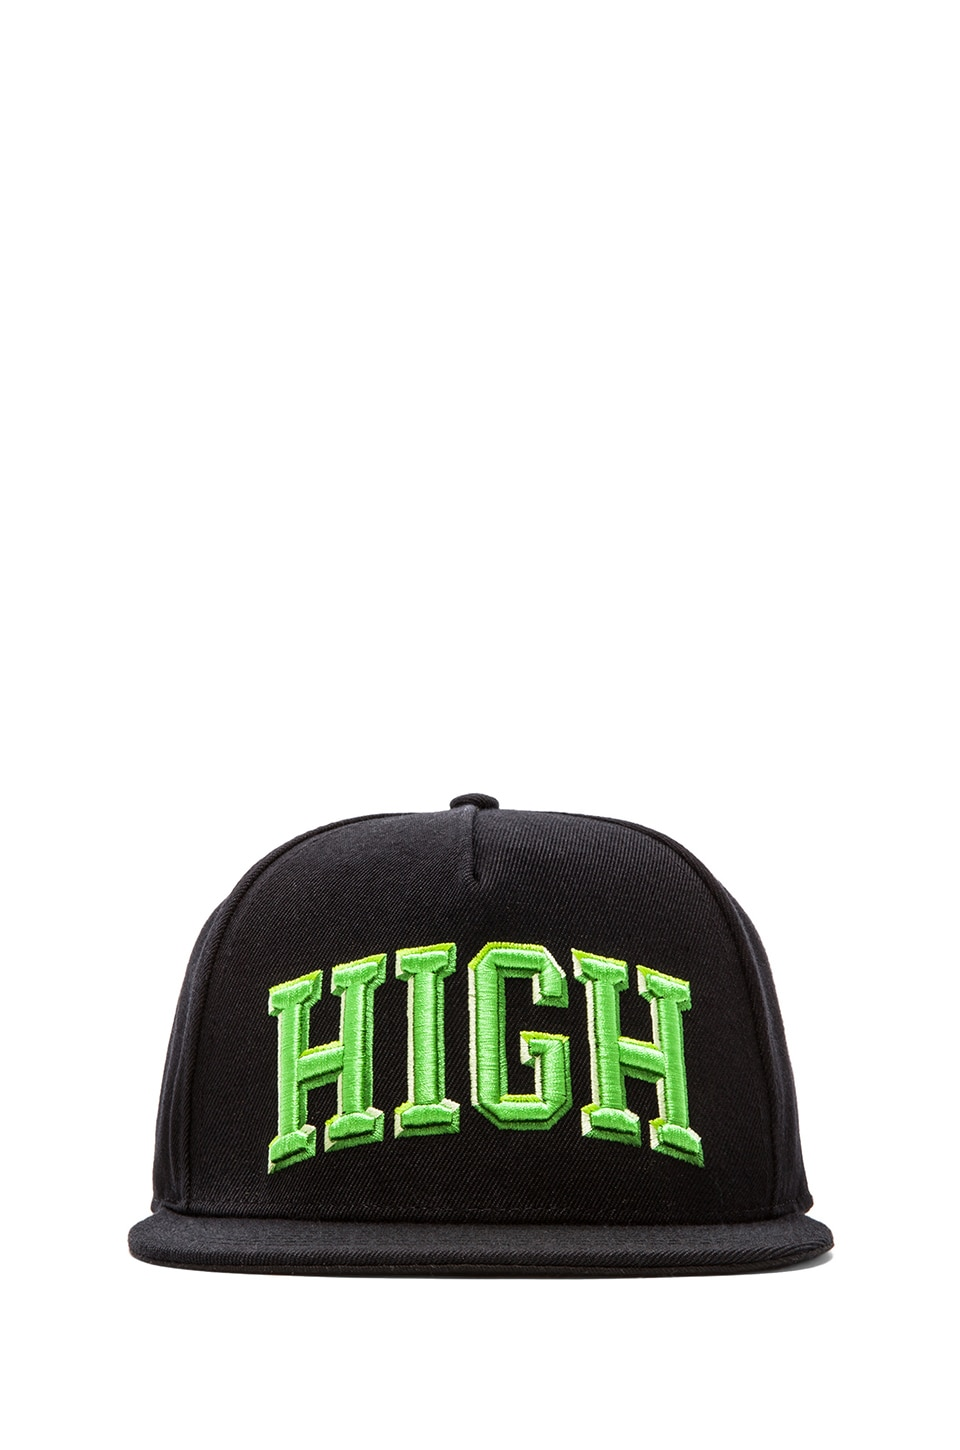 Odd Future Domo High University Snapback in Black